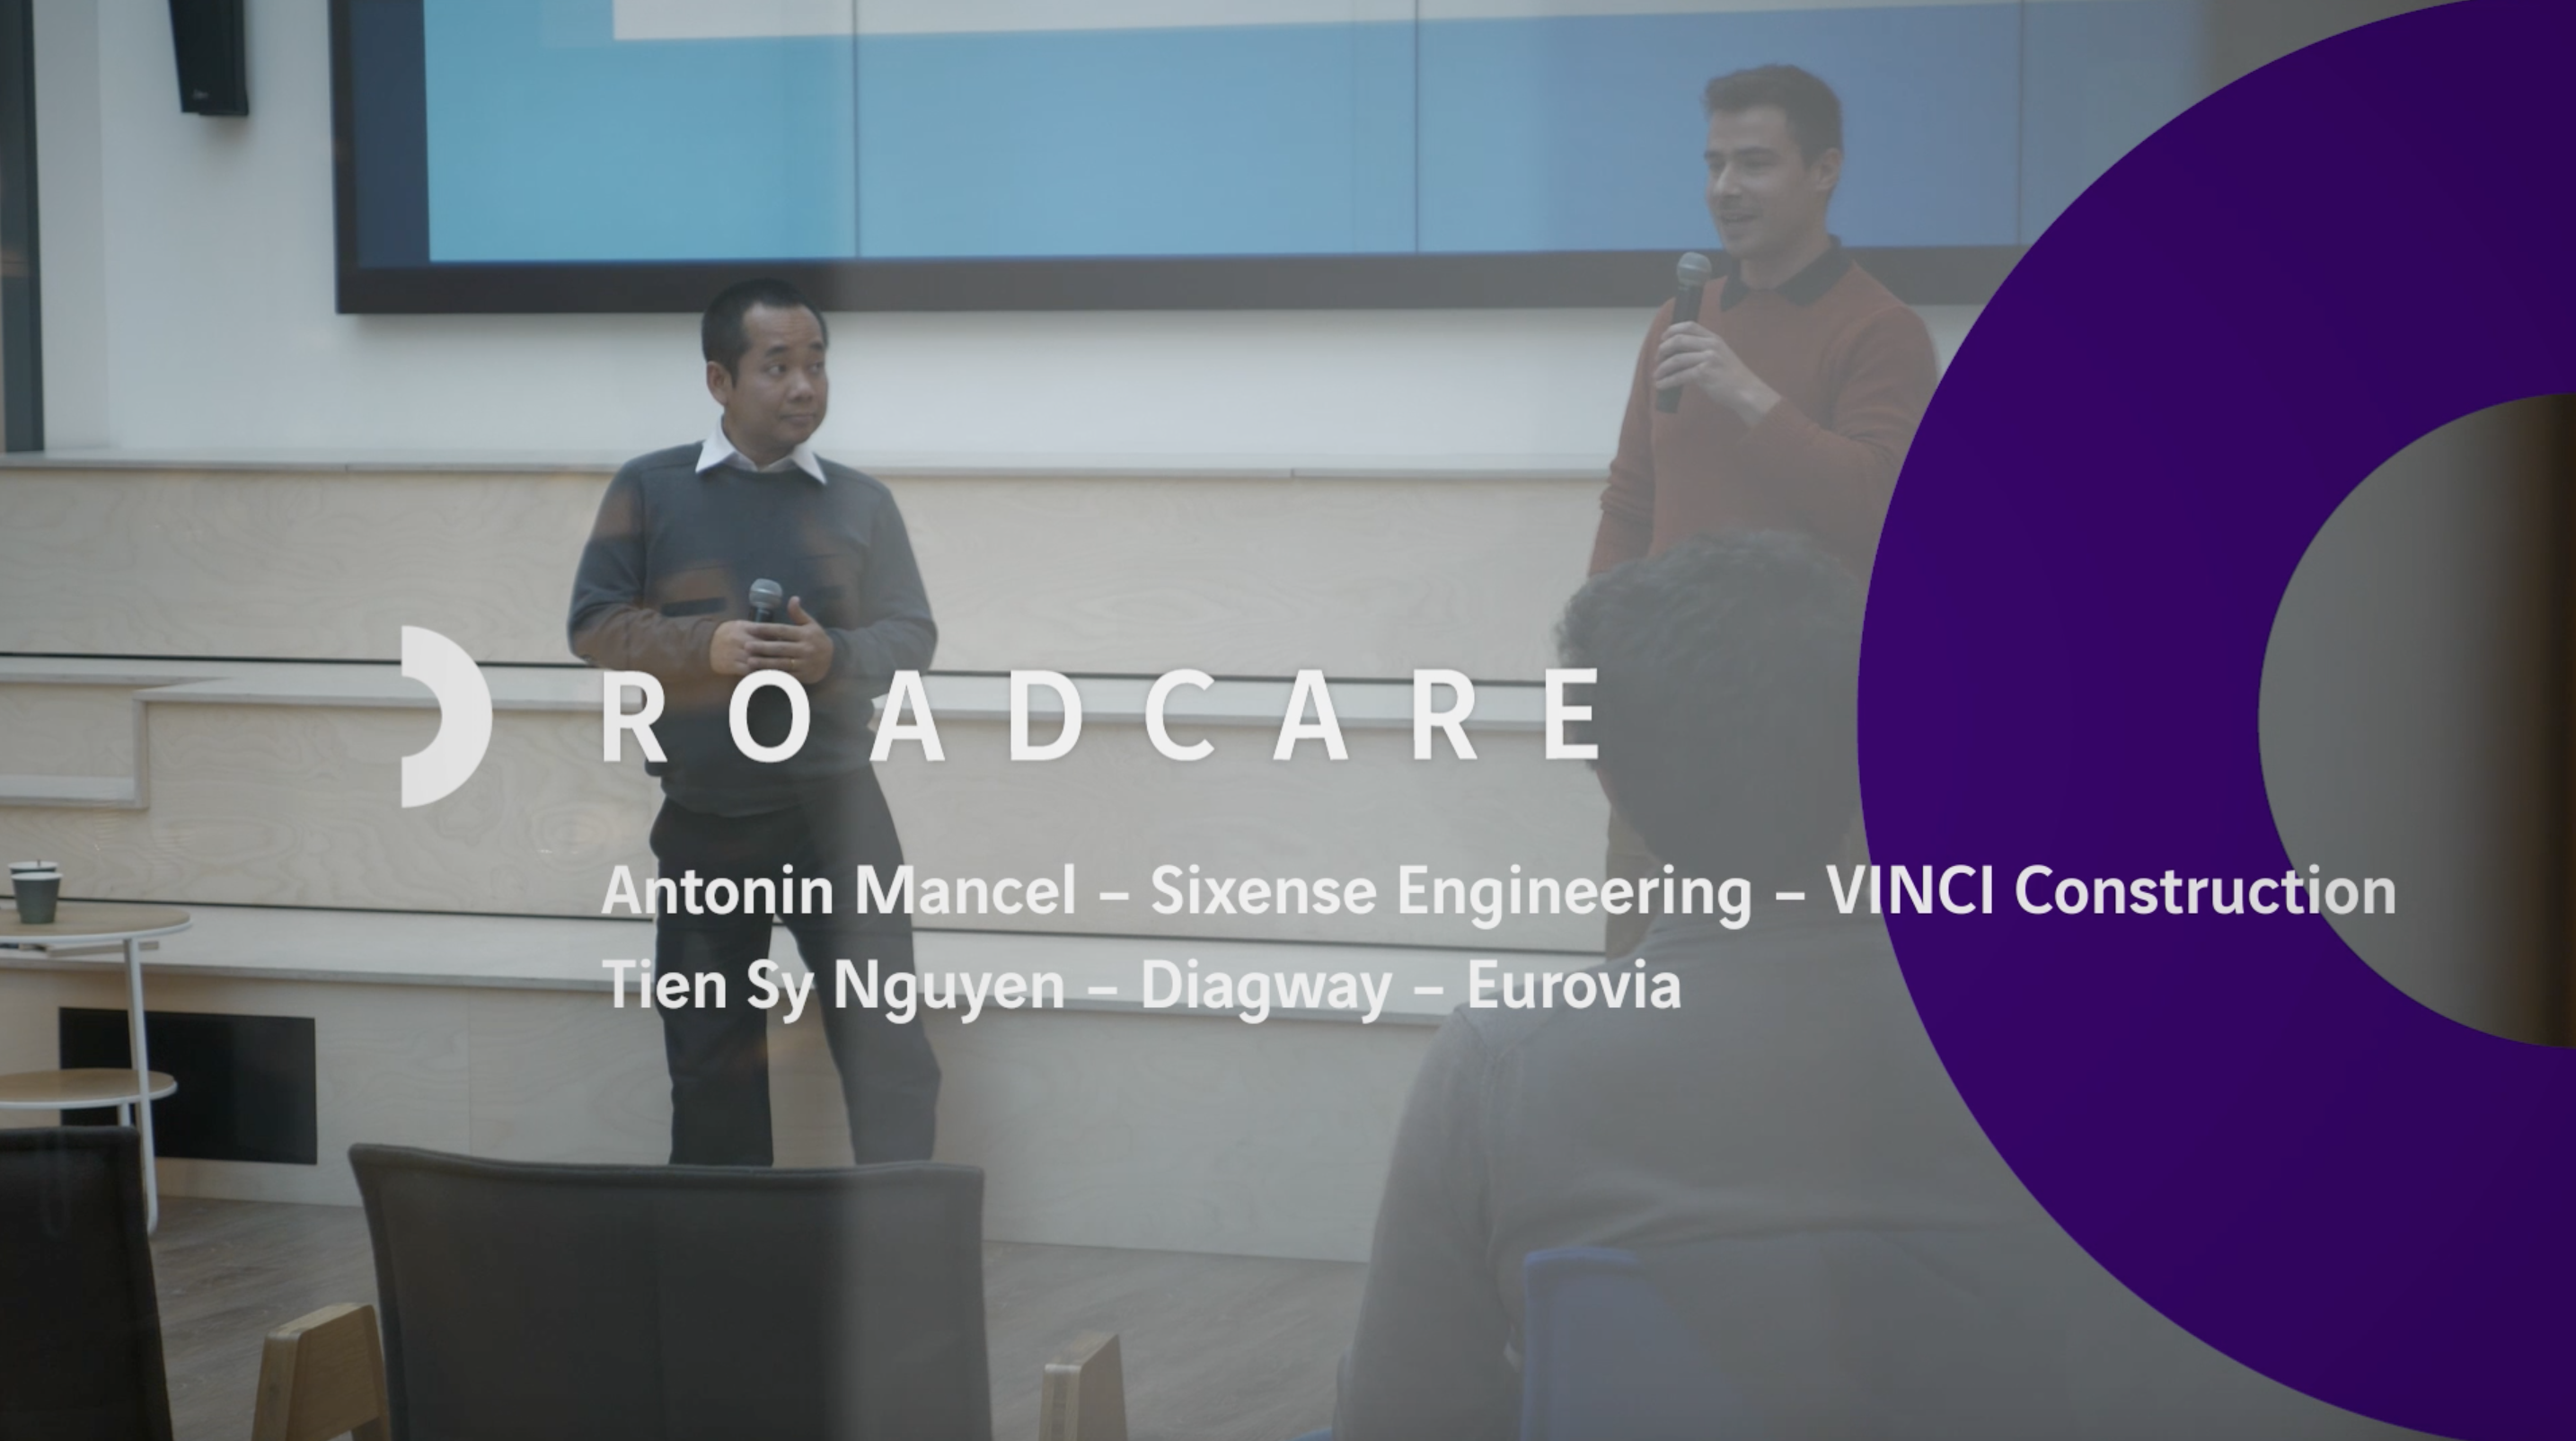 Intrapreneurs: meet Antonin Mancel from Roadcare